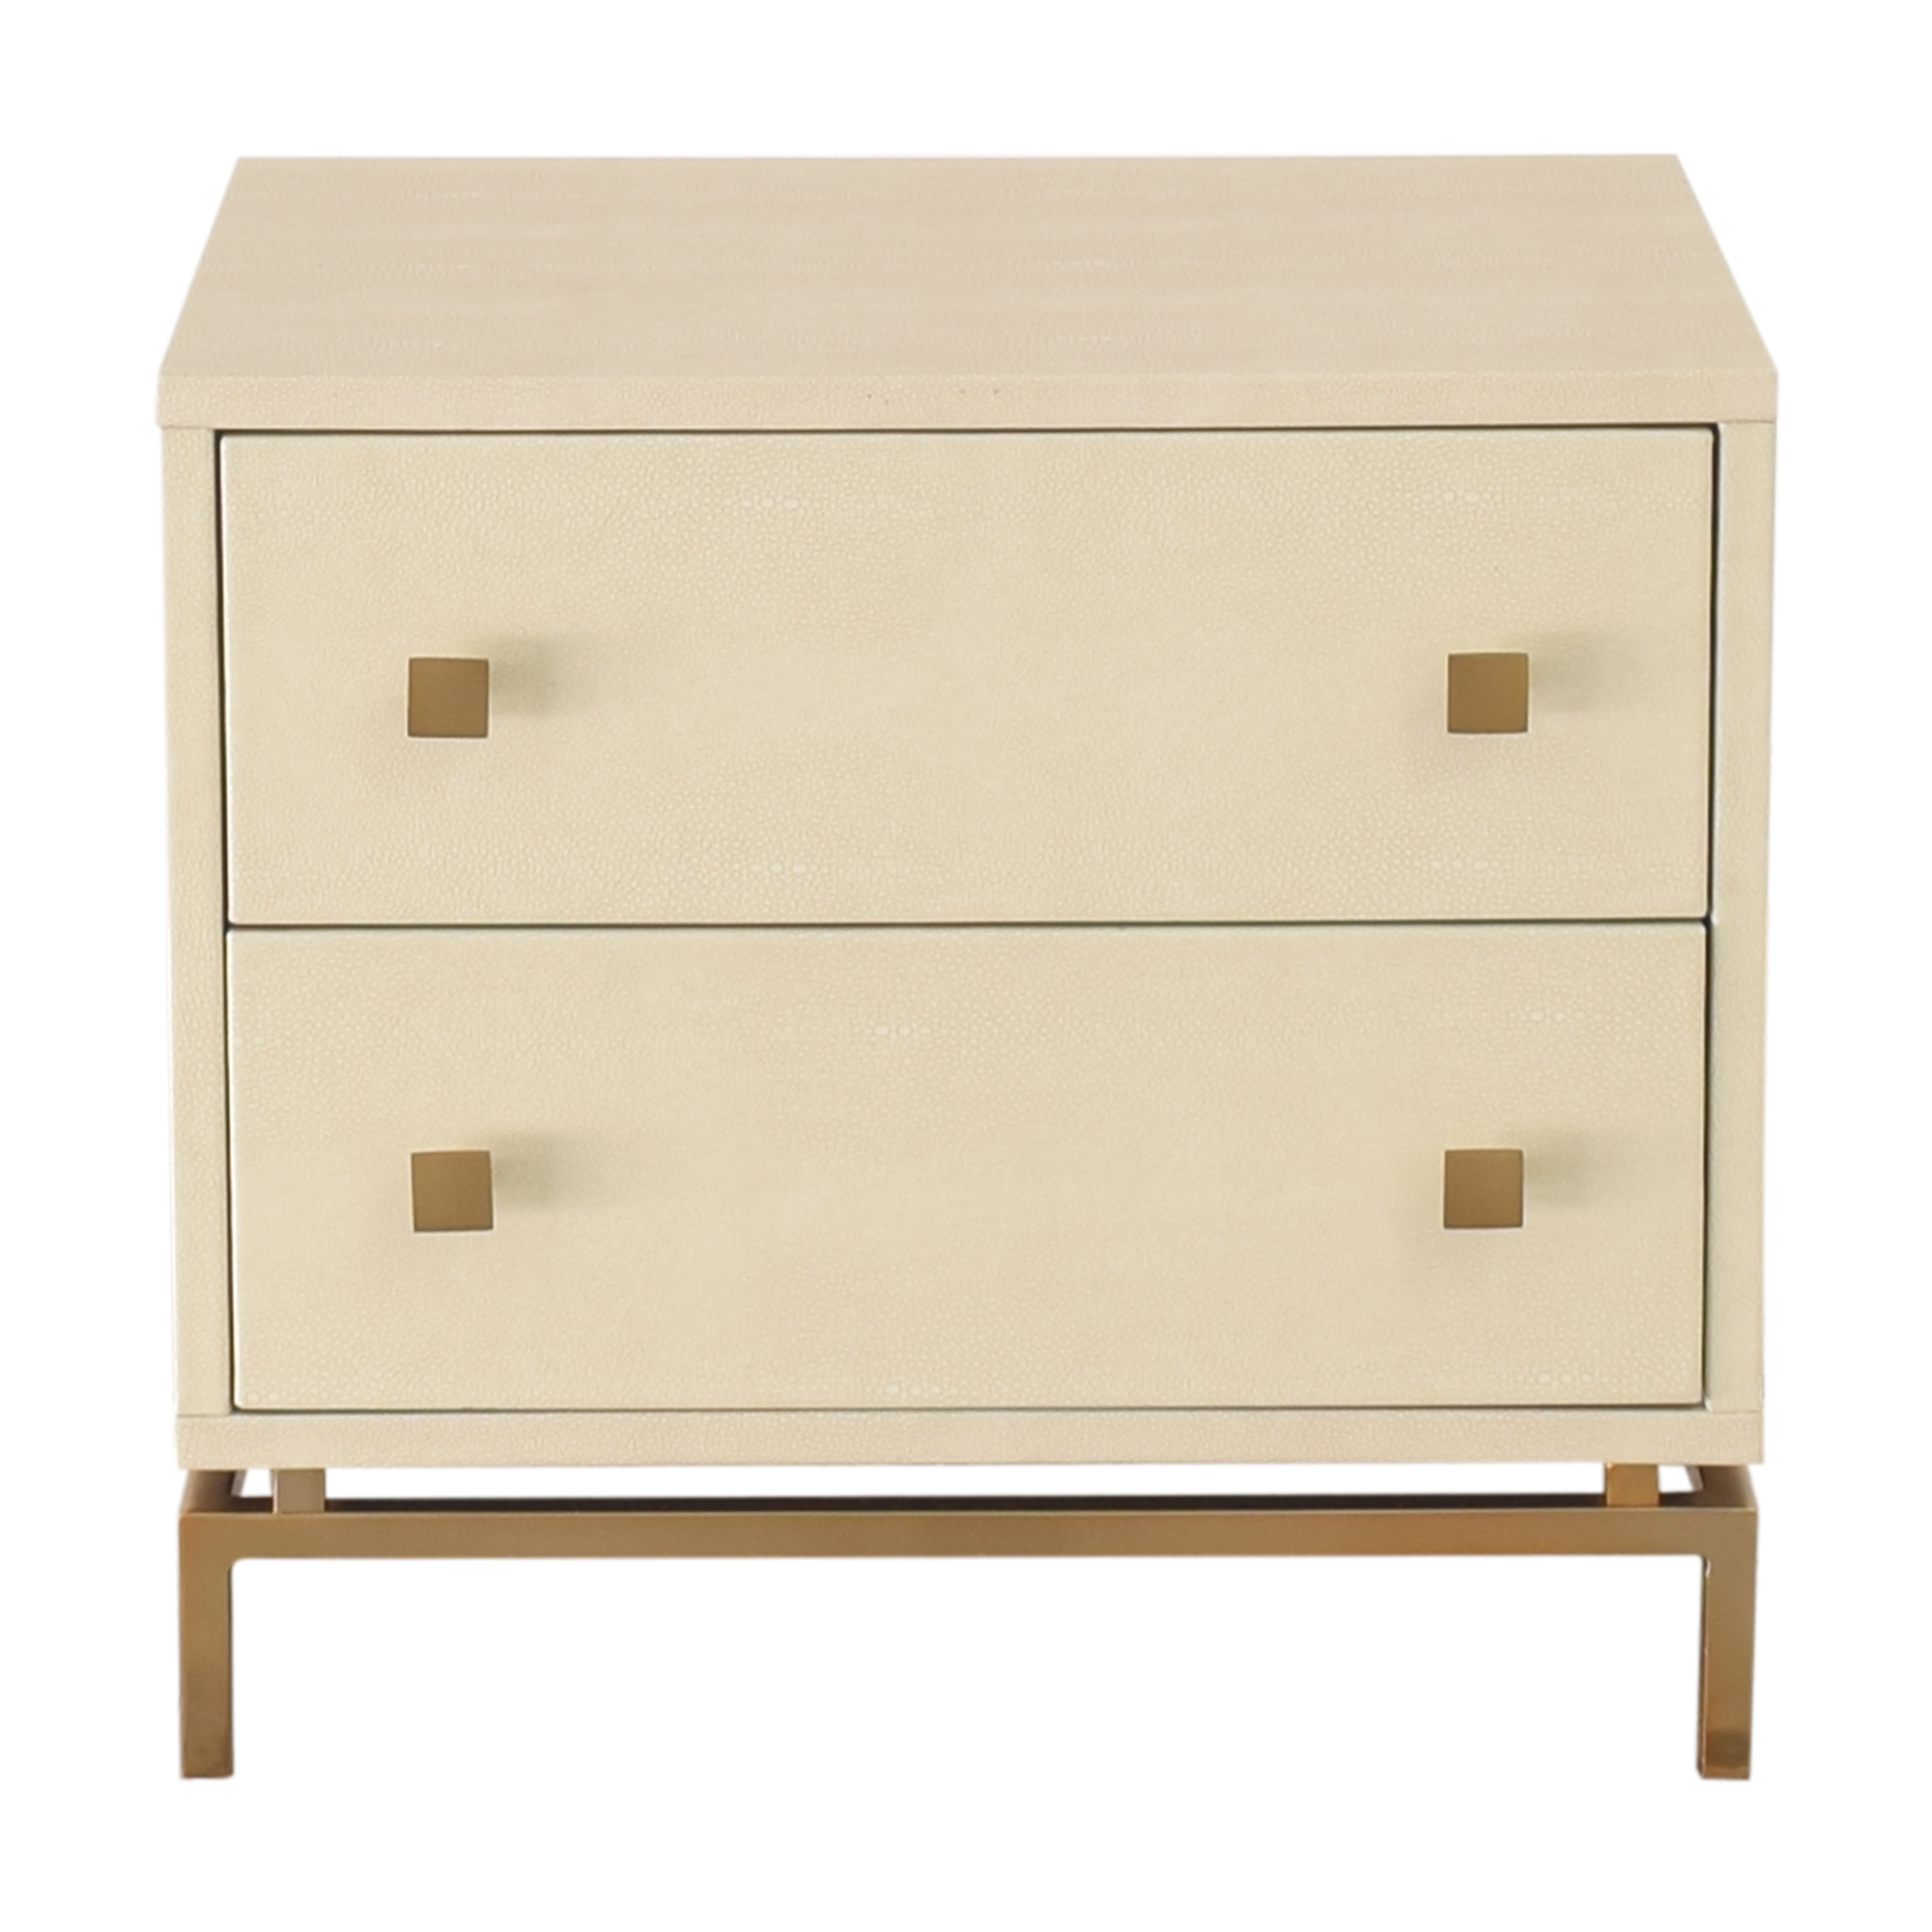 CB2 Shagreen Embossed Nightstand / Tables